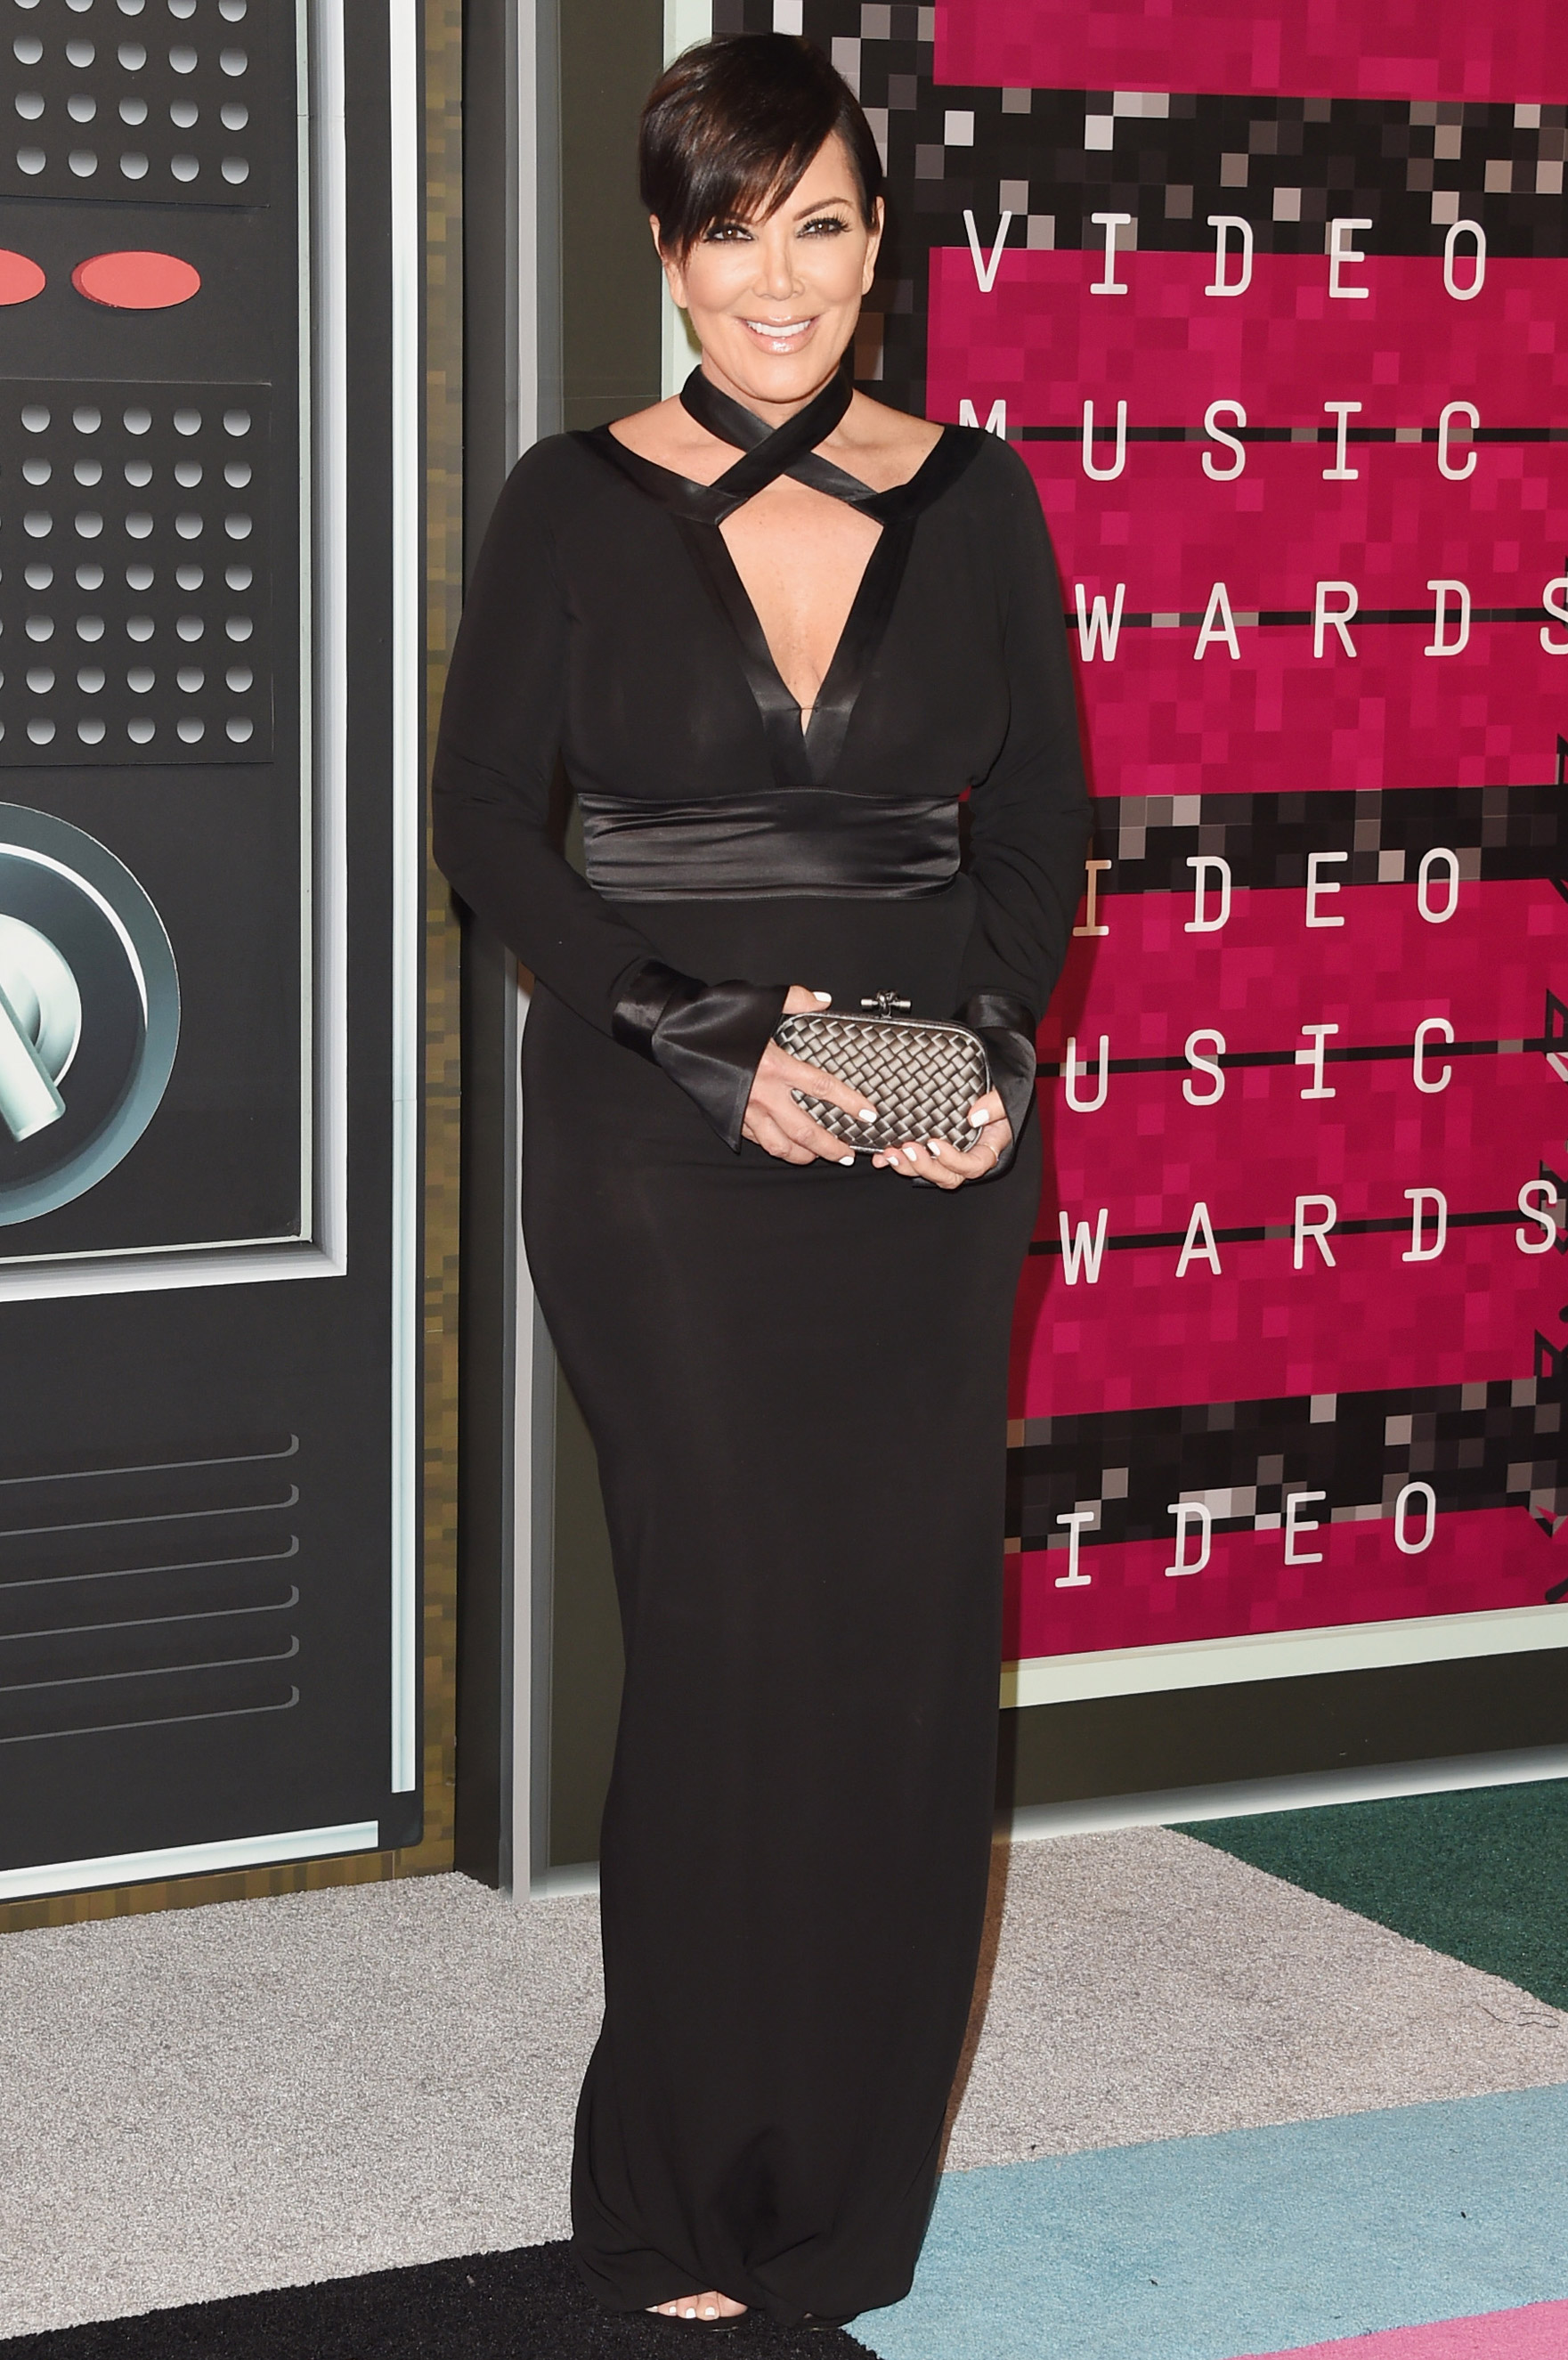 Kris Jenner arrives at the 2015 MTV Video Music Awards at Microsoft Theater on Aug. 30, 2015 in Los Angeles.